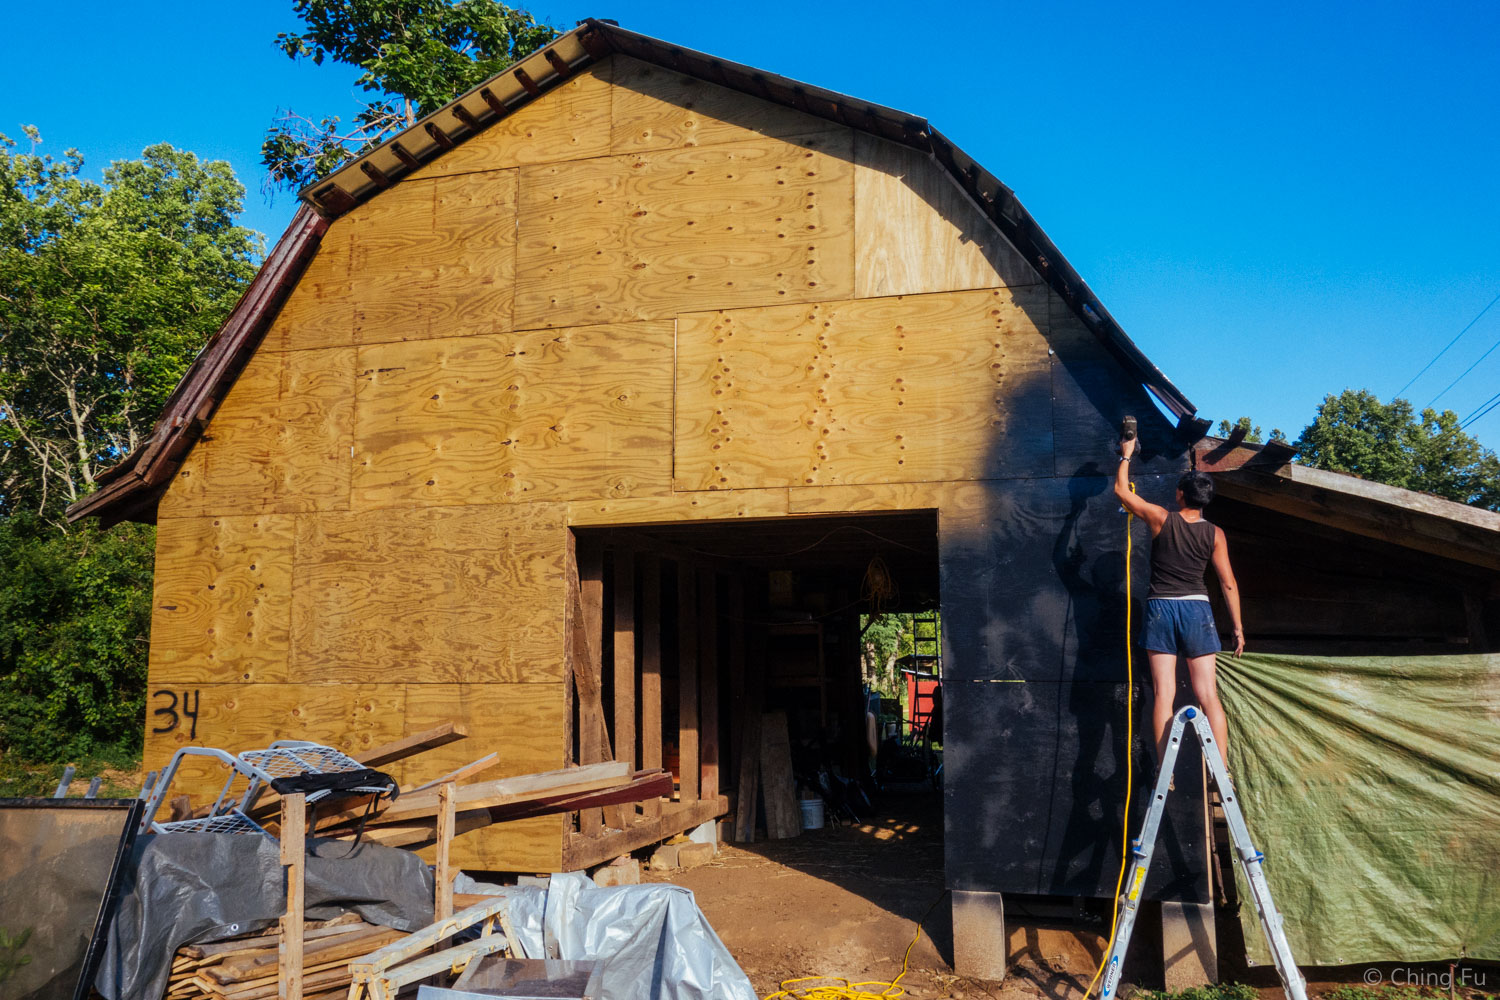 Helping with some of the barn-to-home conversion work.